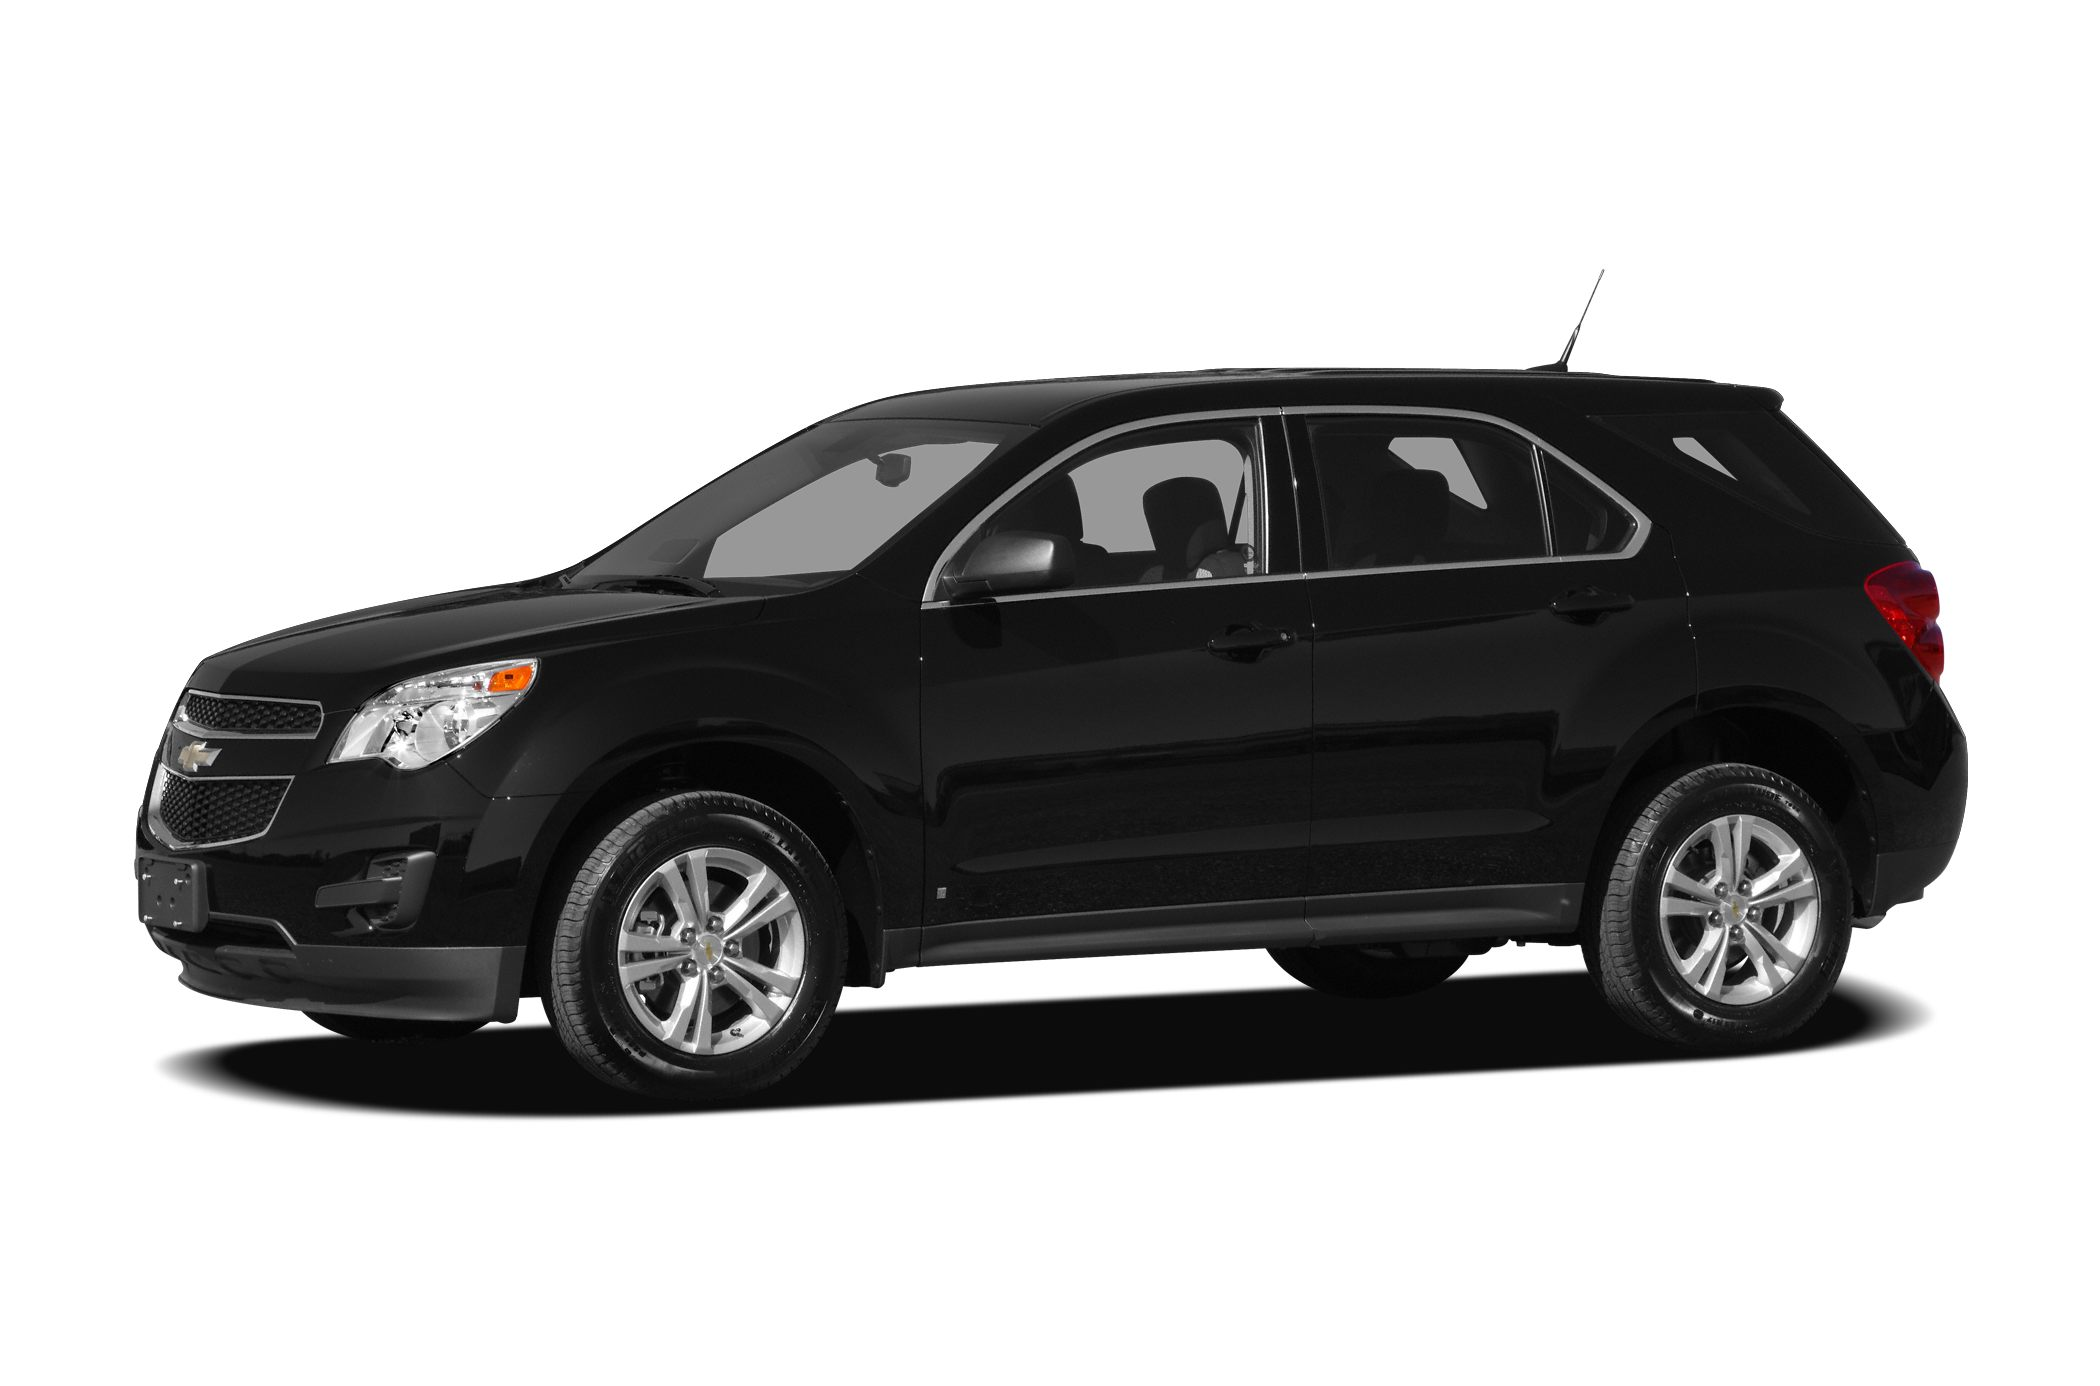 2010 Chevrolet Equinox LT SUV for sale in Fort Lauderdale for $0 with 53,815 miles